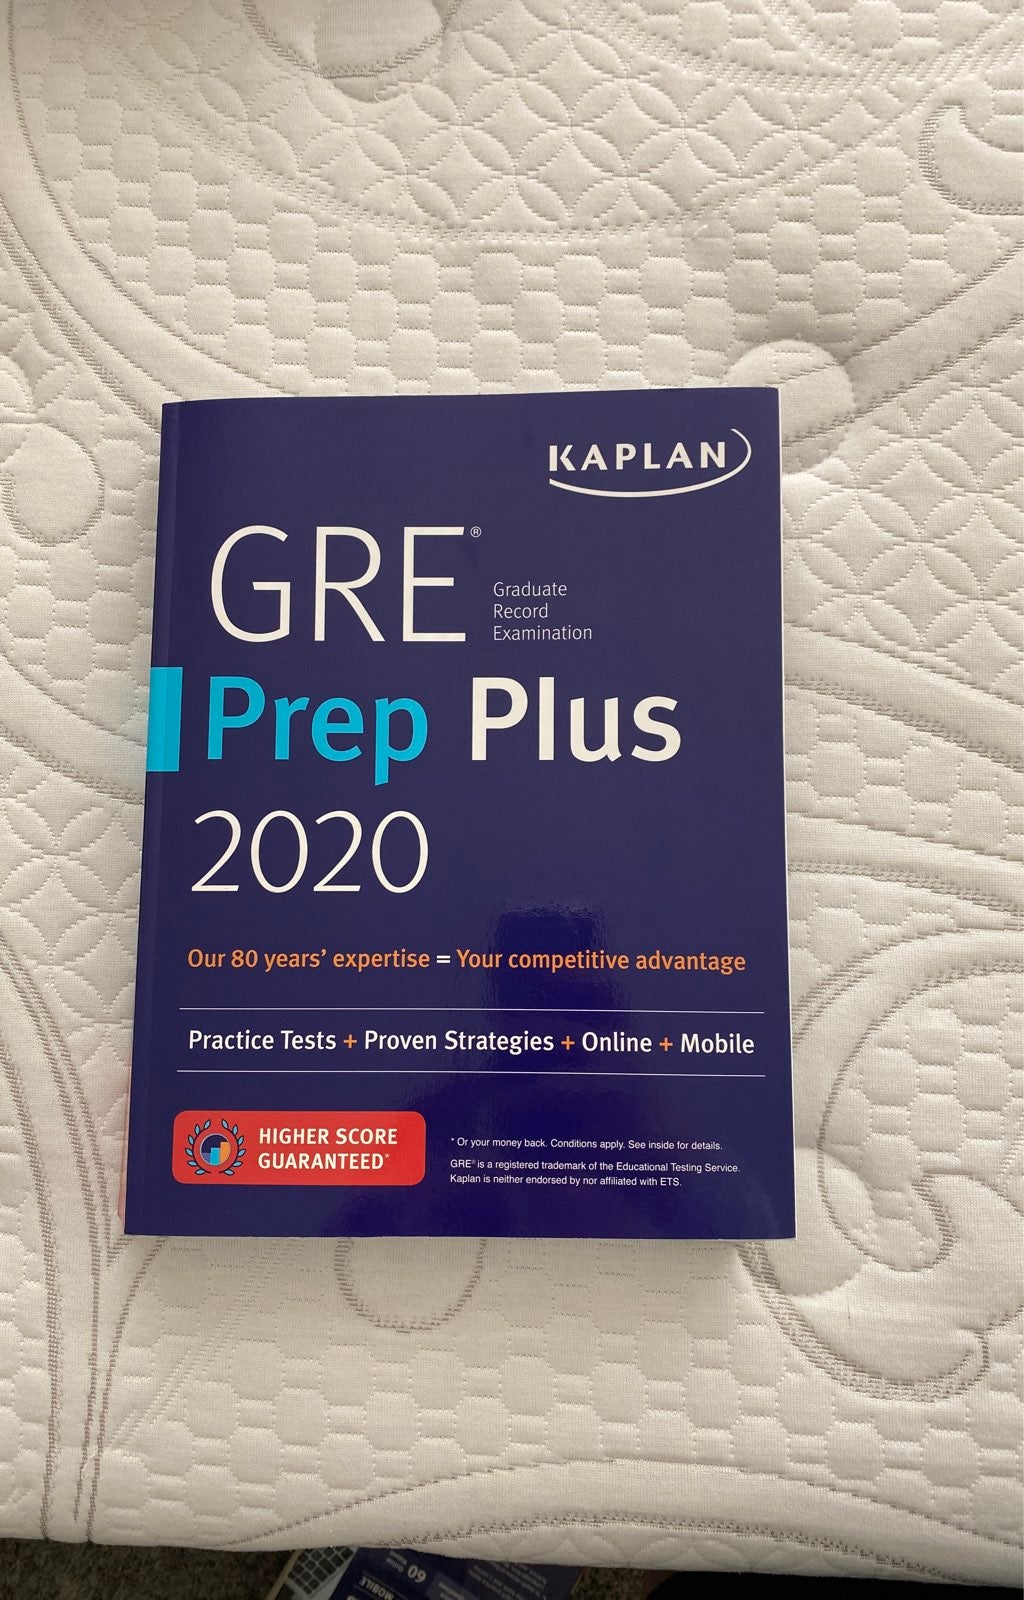 GRE Prep plus 2020 book